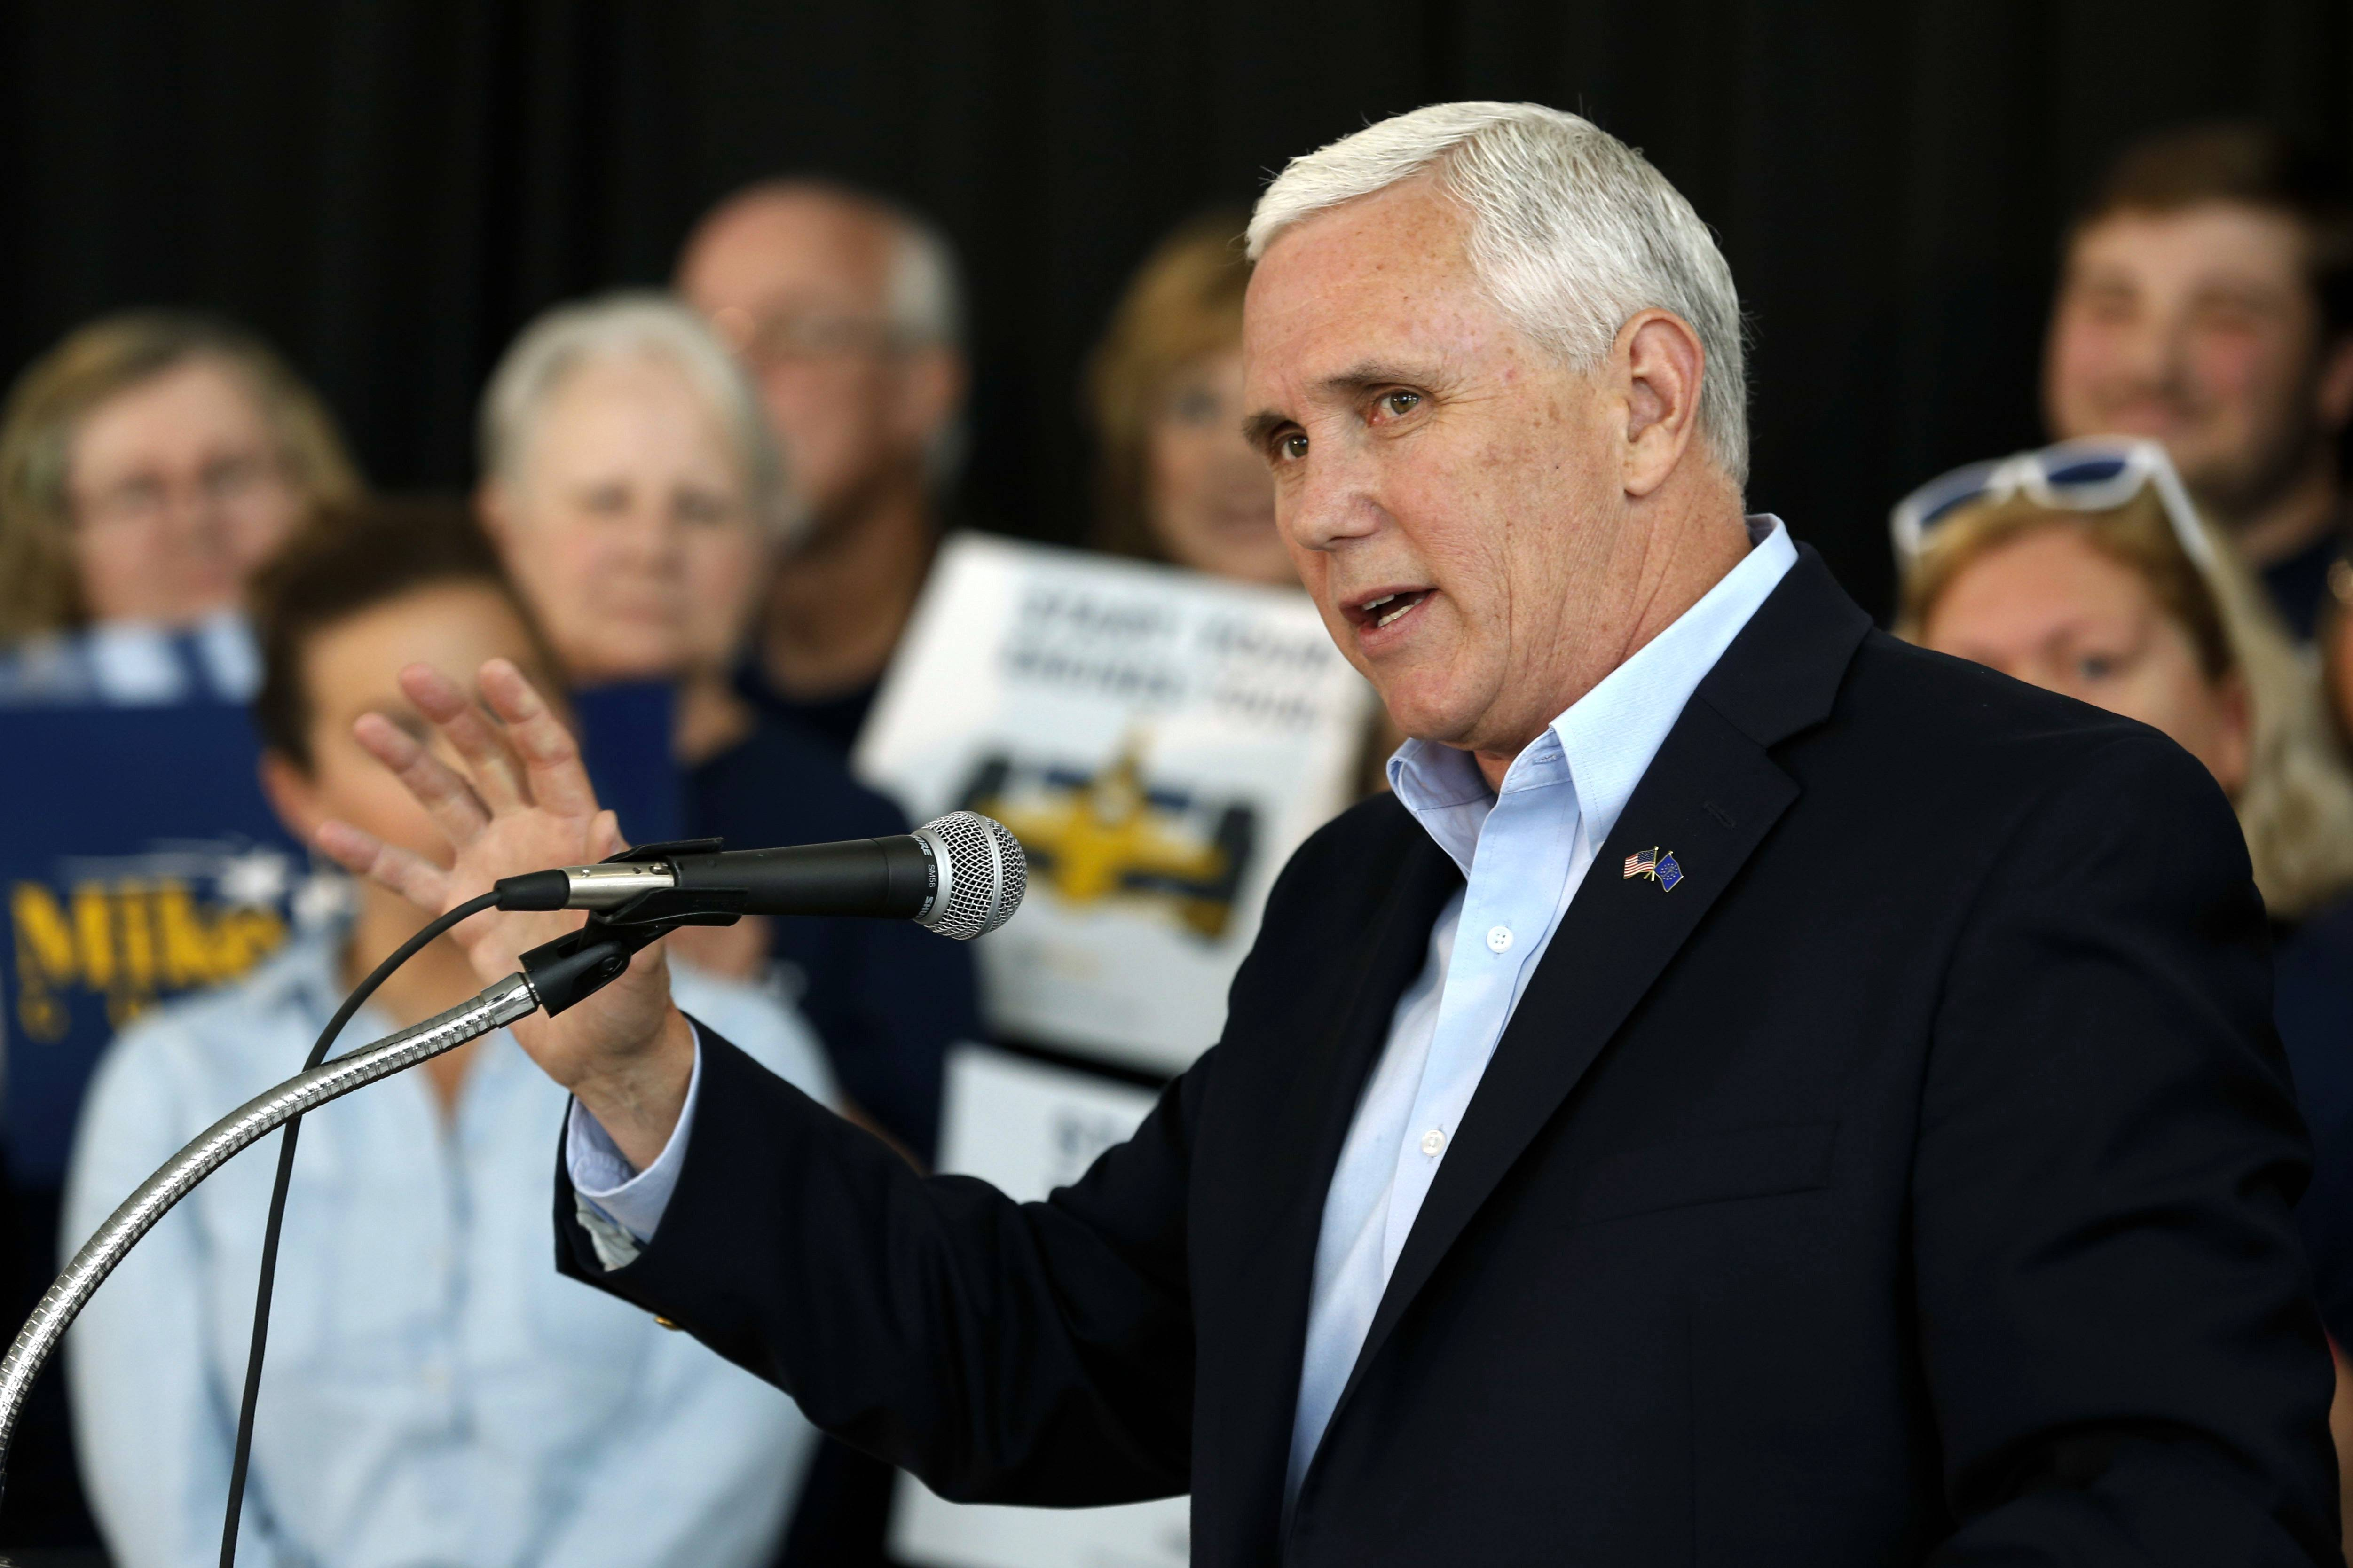 Indiana Gov. Mike Pence launched his campaign for re-election during an event May 11 in Indianapolis.